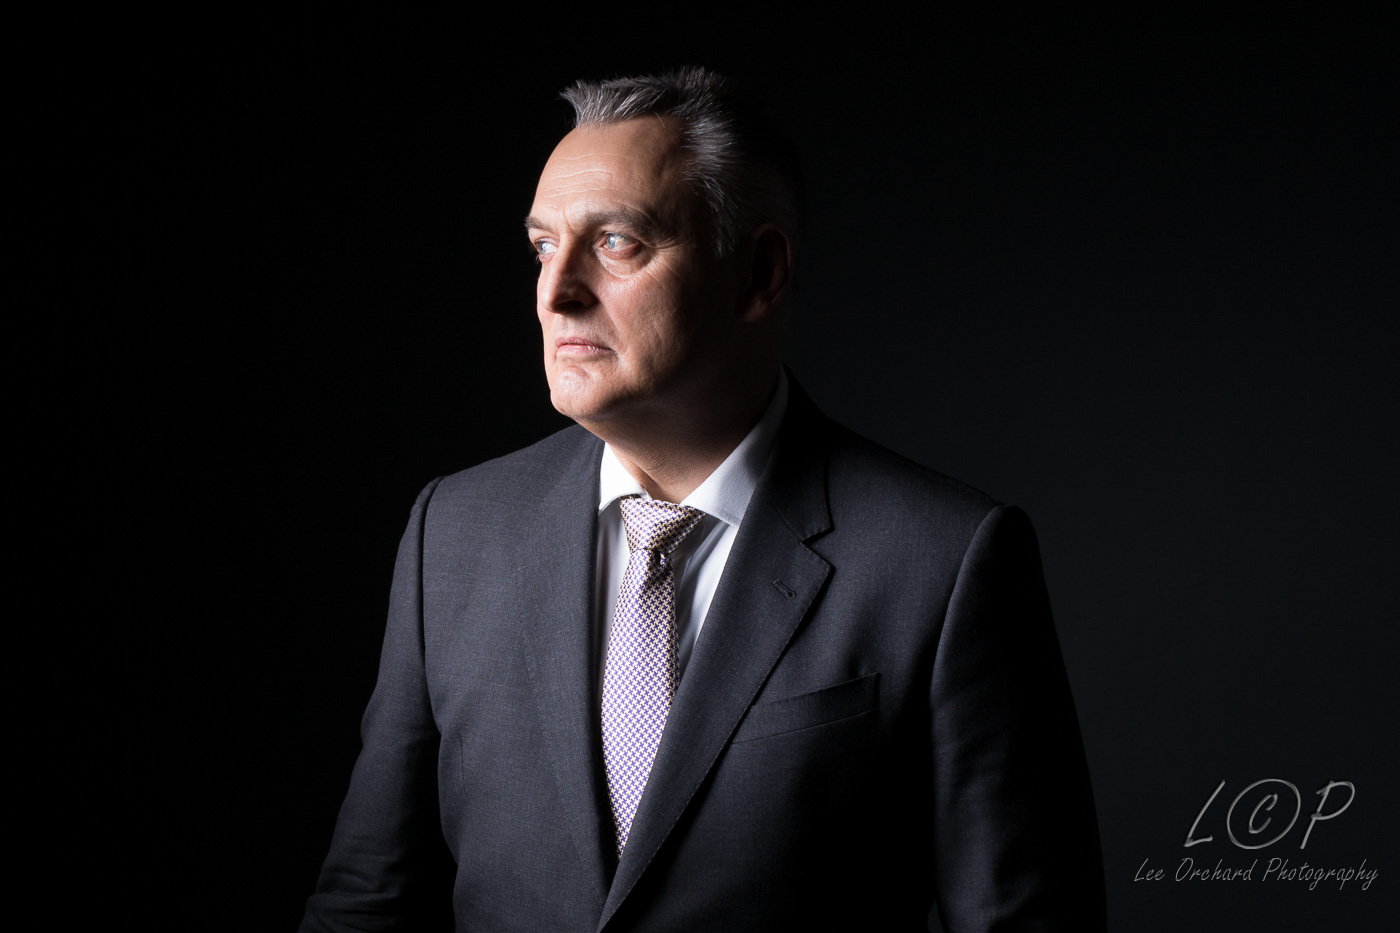 Business Portrait, New Lighting